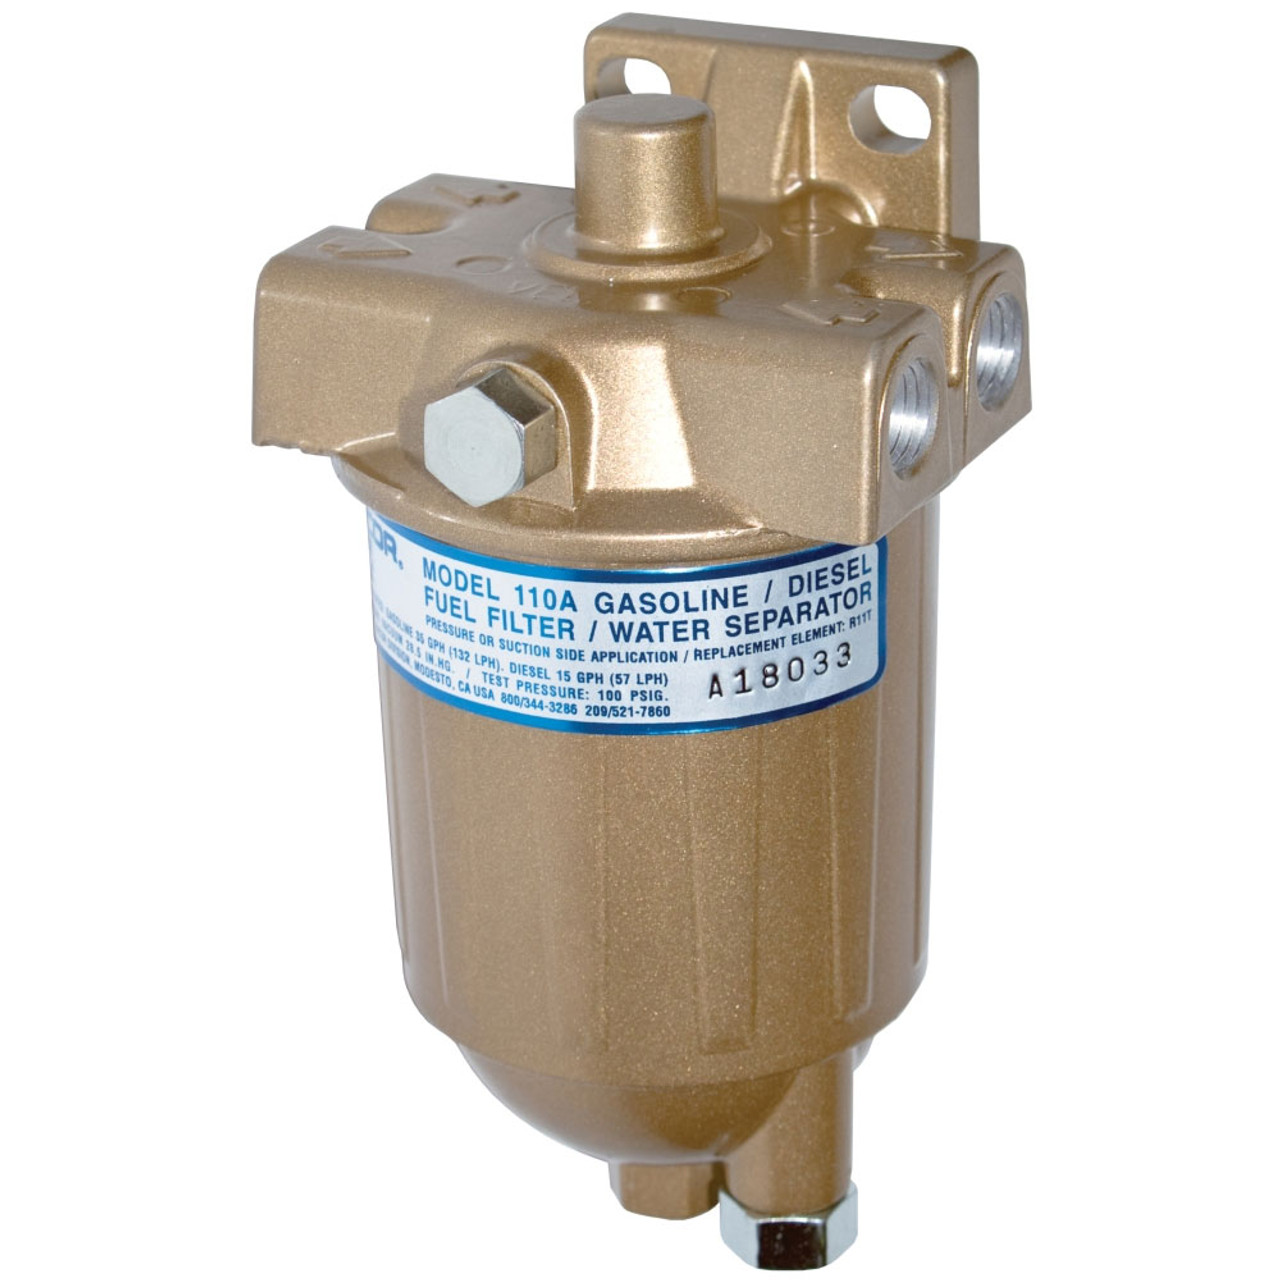 racor 110a series low flow fuel filter water separator filter assembly 10 micron 6 qty john m ellsworth co inc  [ 1280 x 1280 Pixel ]